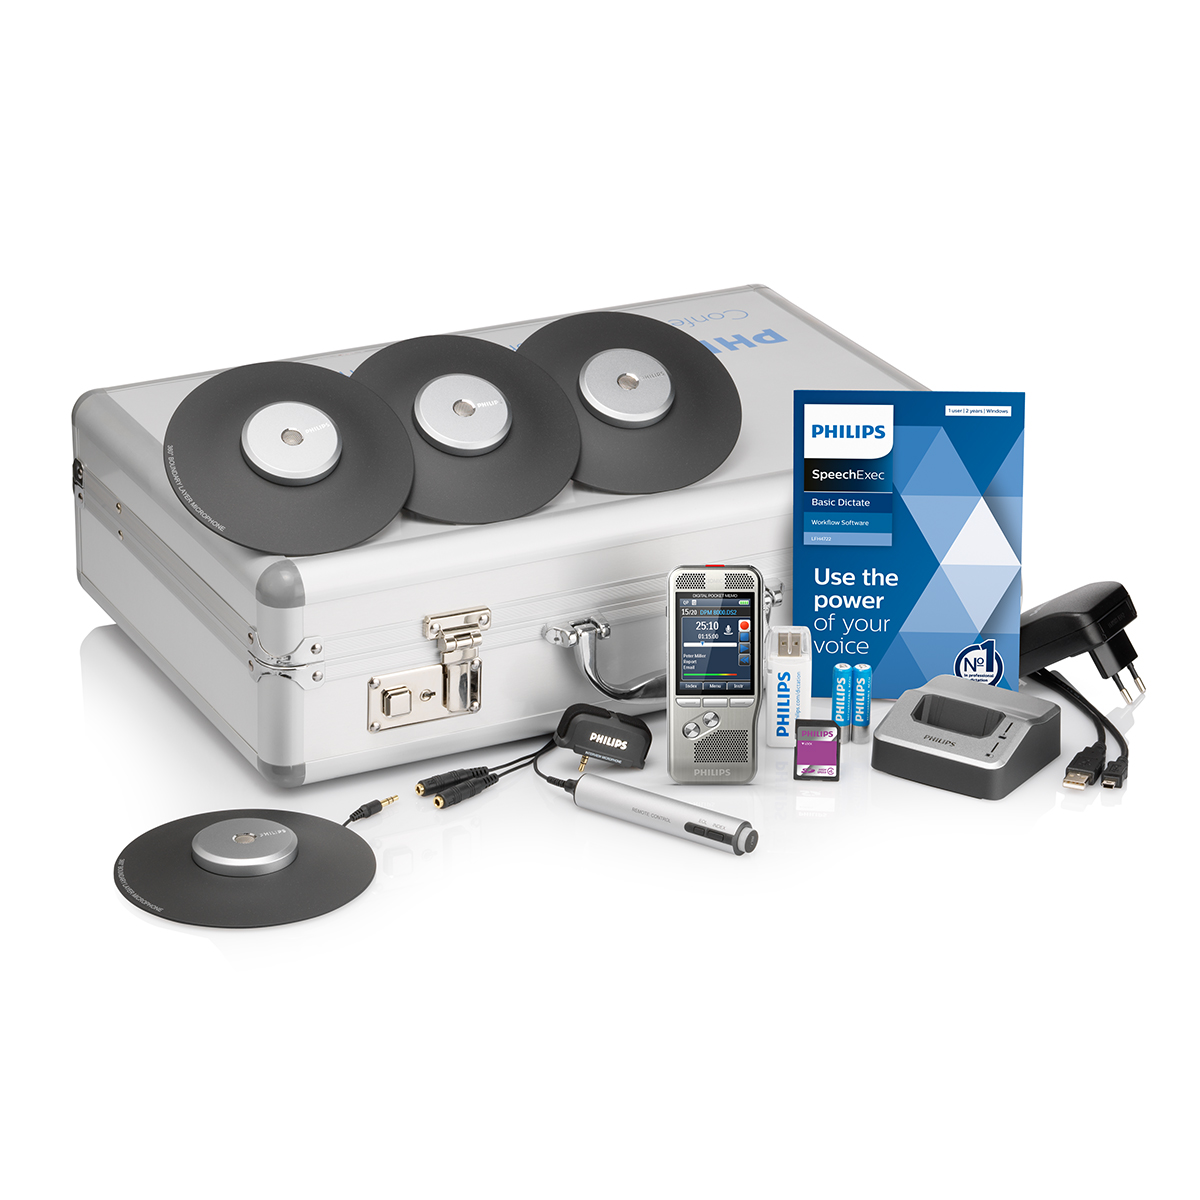 Philips DPM8900 Conference Recording Kit with SpeechExec 11 Dictate